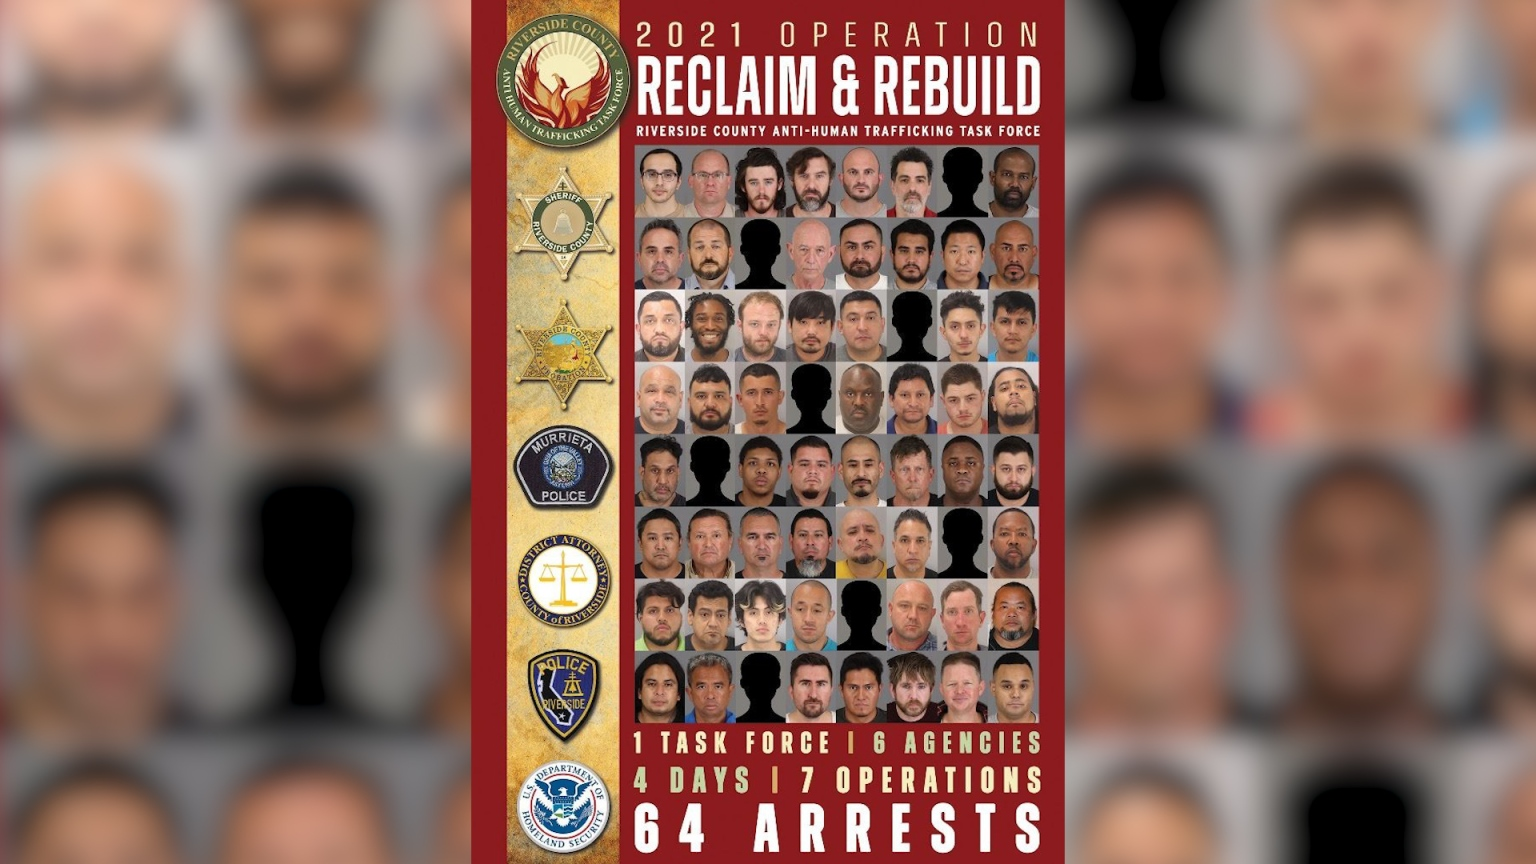 Riverside County DA Investigator among 64 arrested in prostitution sting, 17 from the Coachella Valley